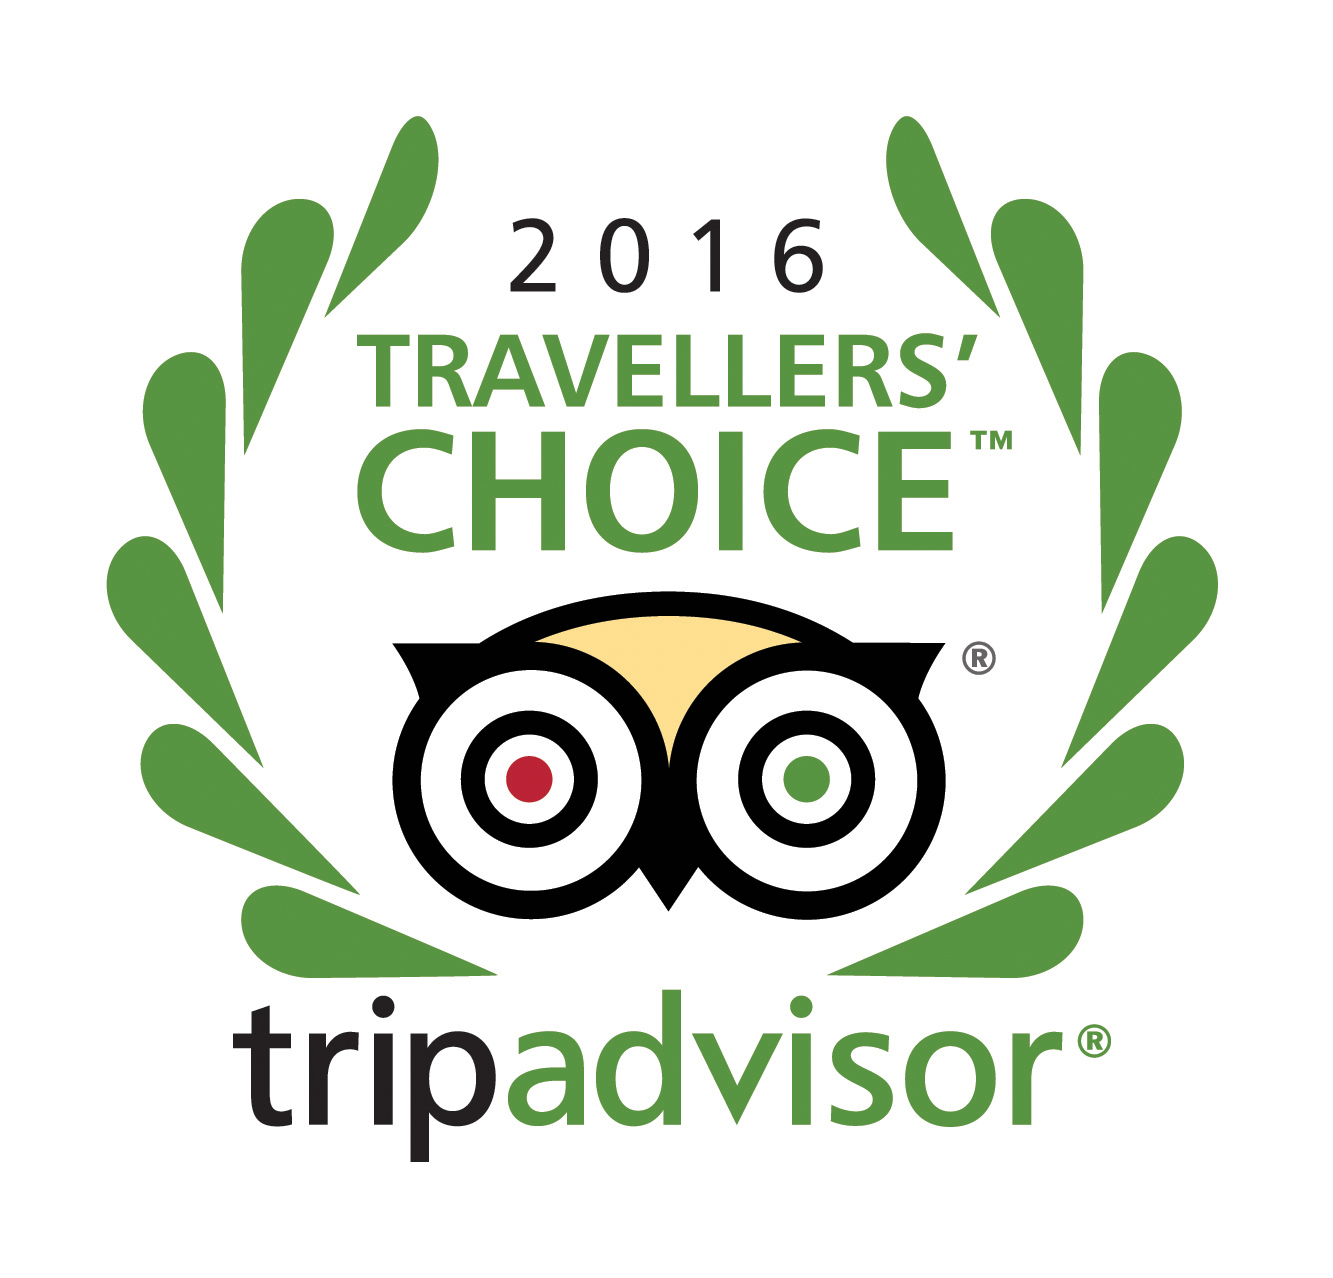 TripAdvisor Travellers' Choice Award Winner